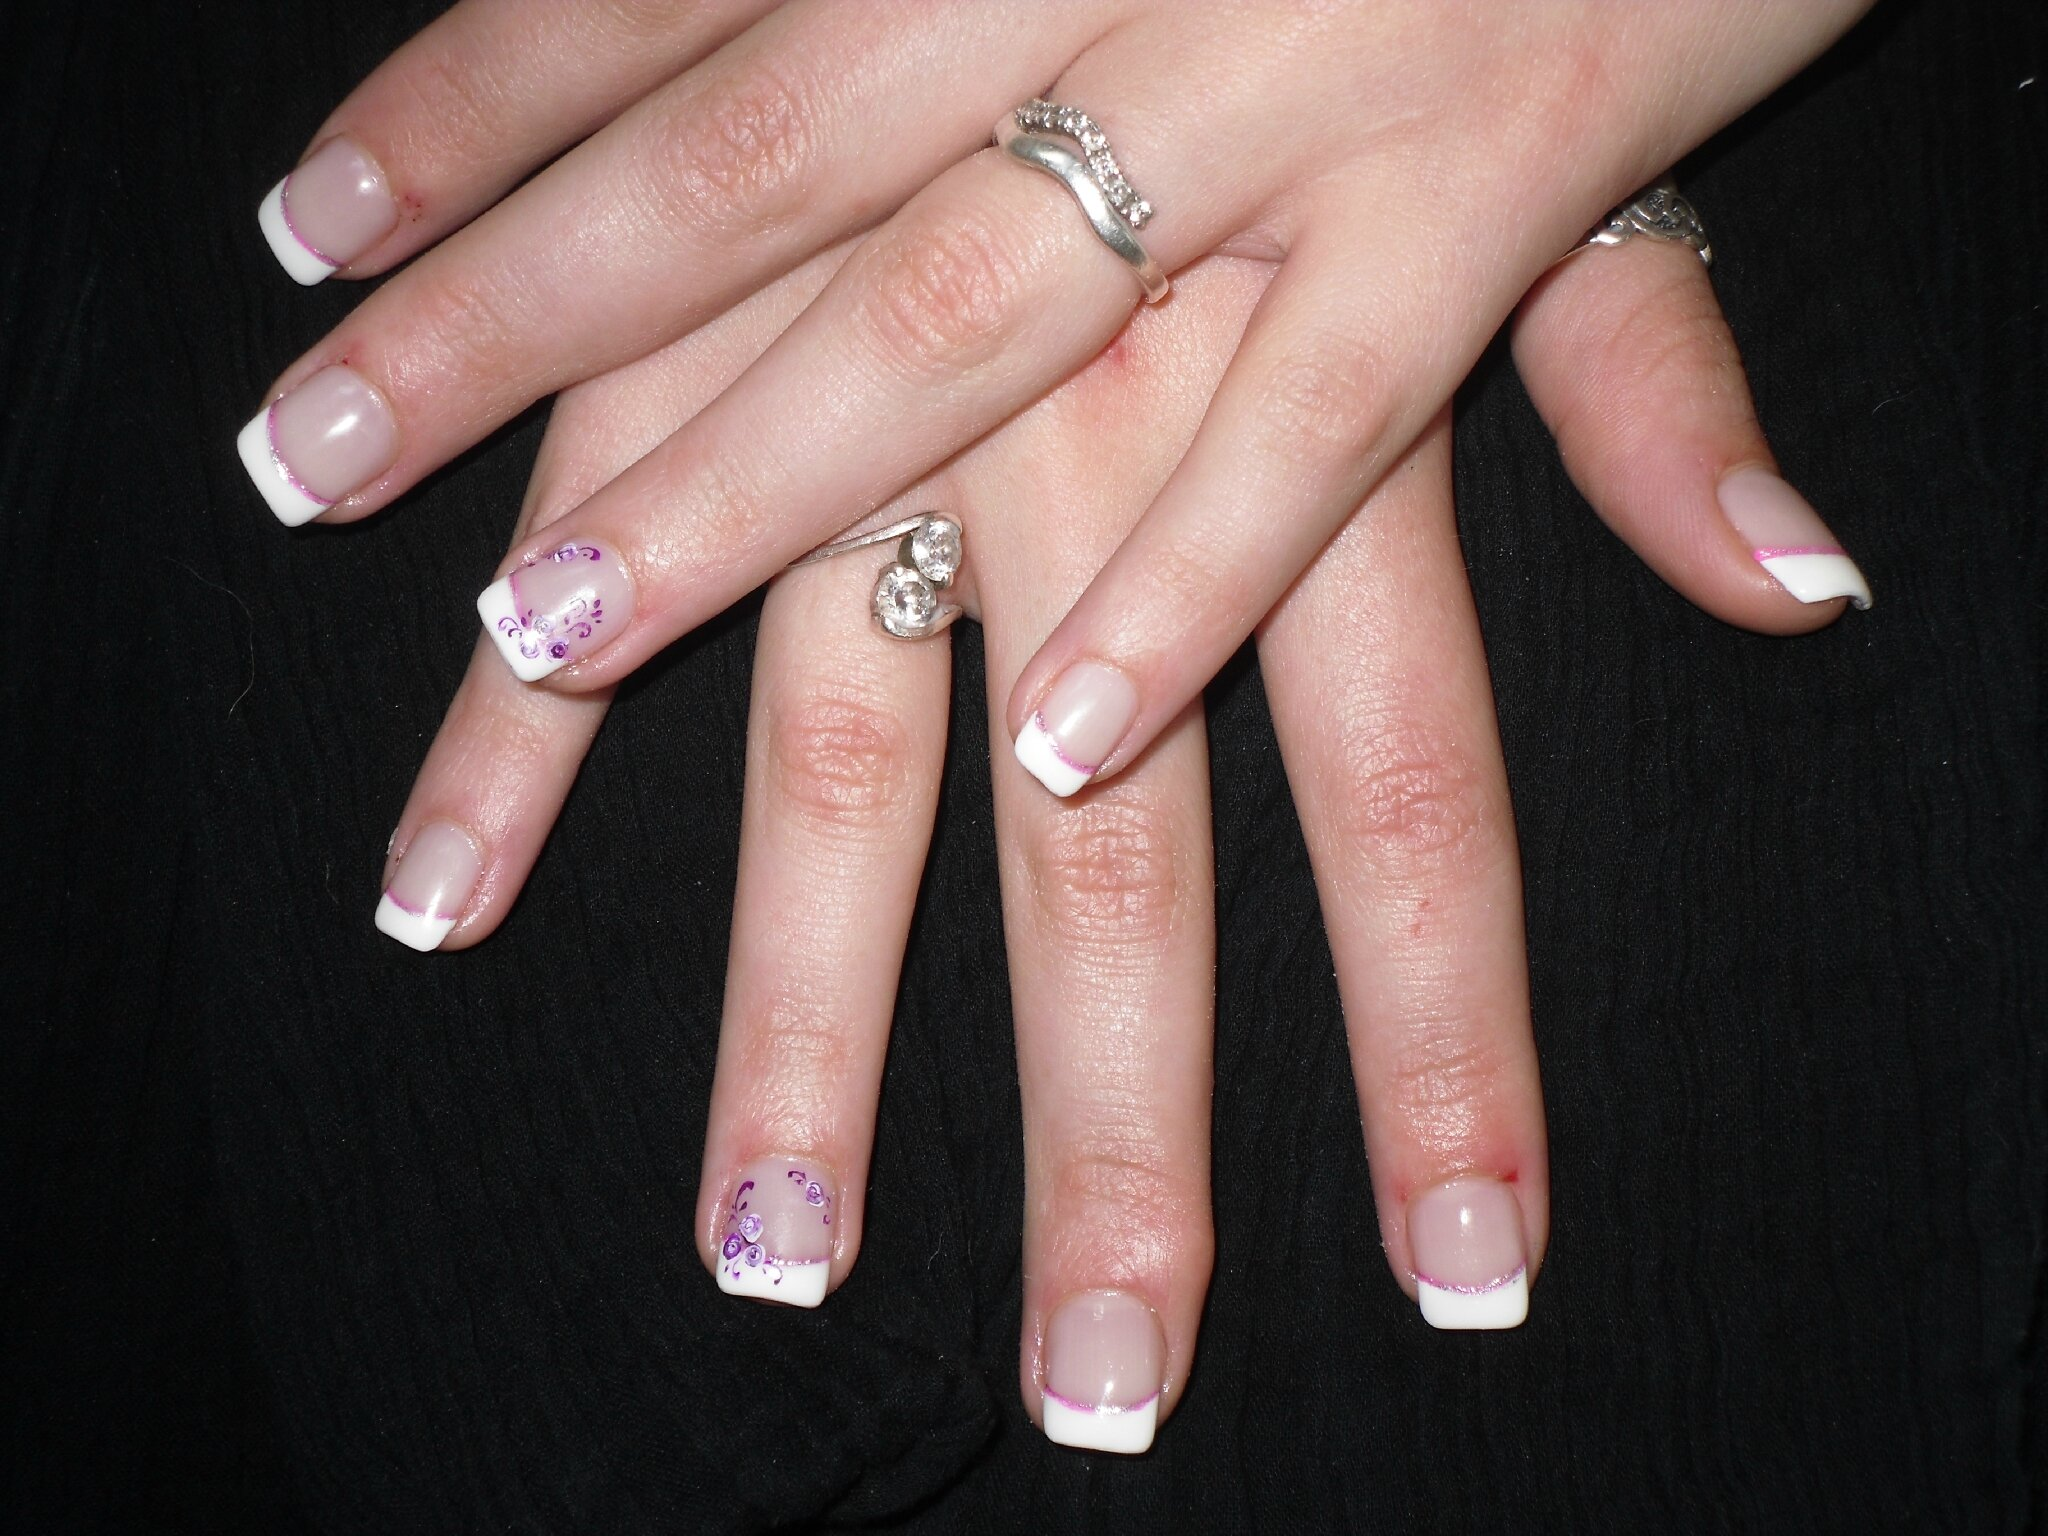 ... Nail Art Pinceau Court Pour Fines Décorations.  Free Image Nail Art